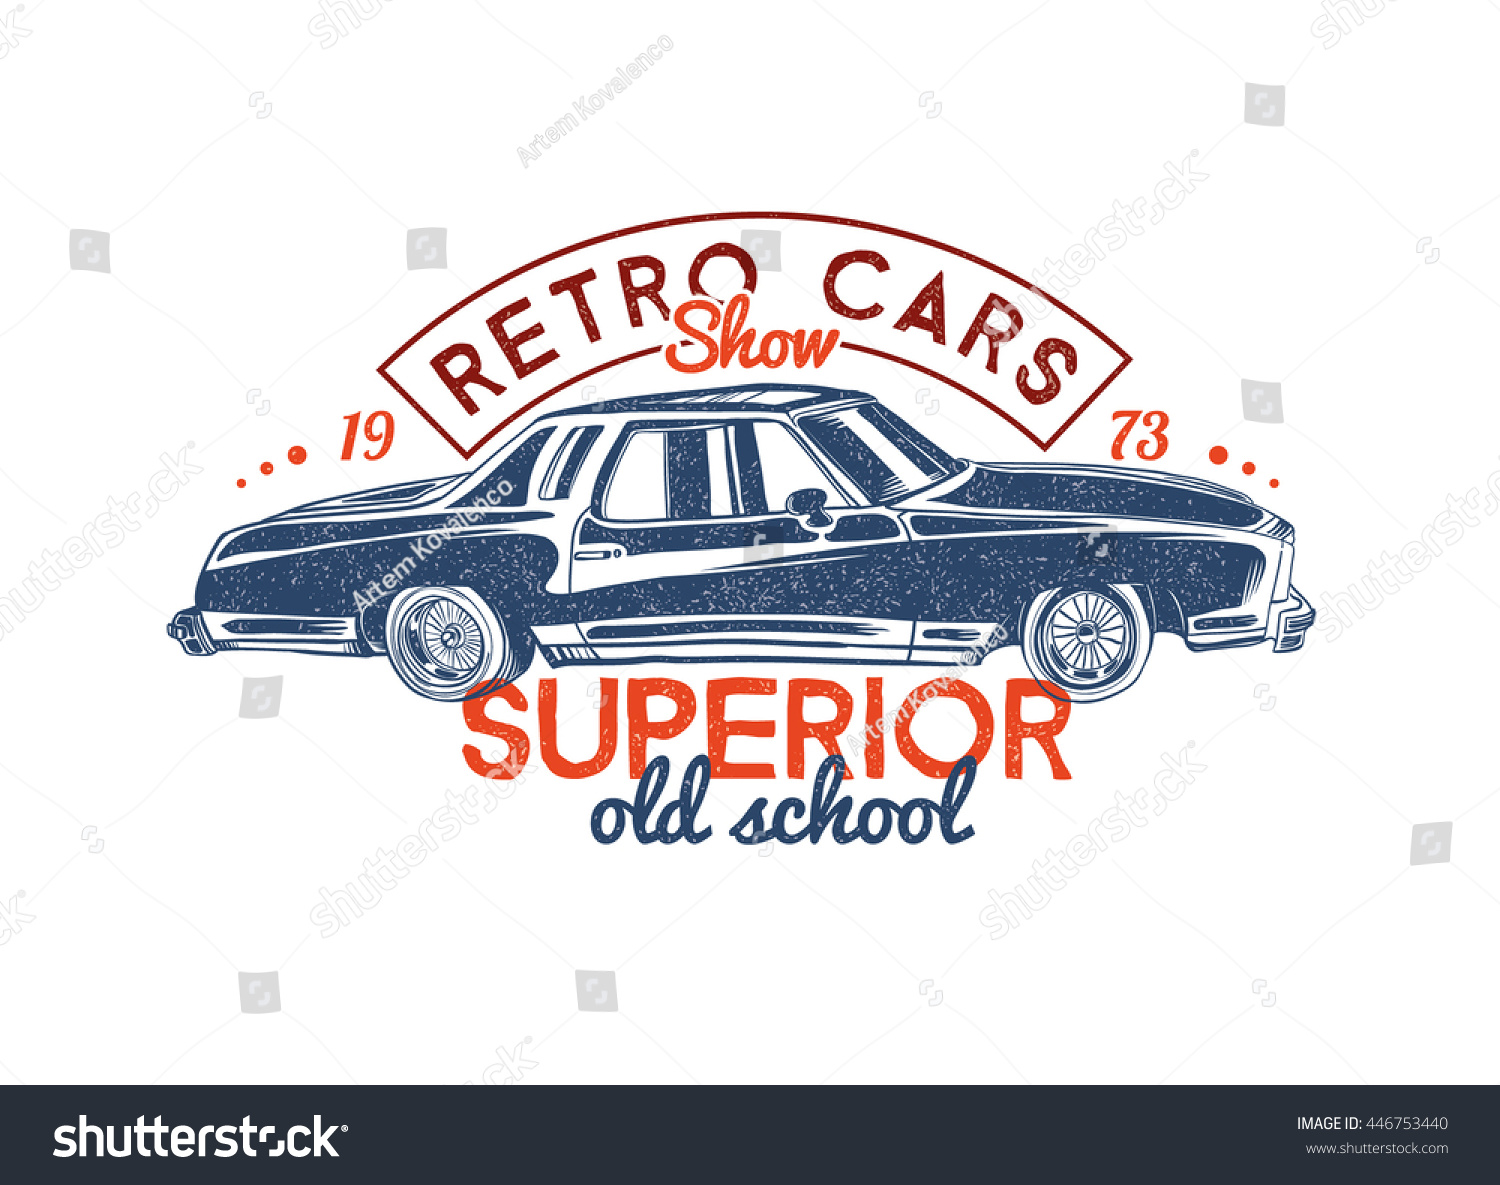 Vector Template Design Graphics Tshirt Print Stock Vector Royalty - Car show t shirt design template